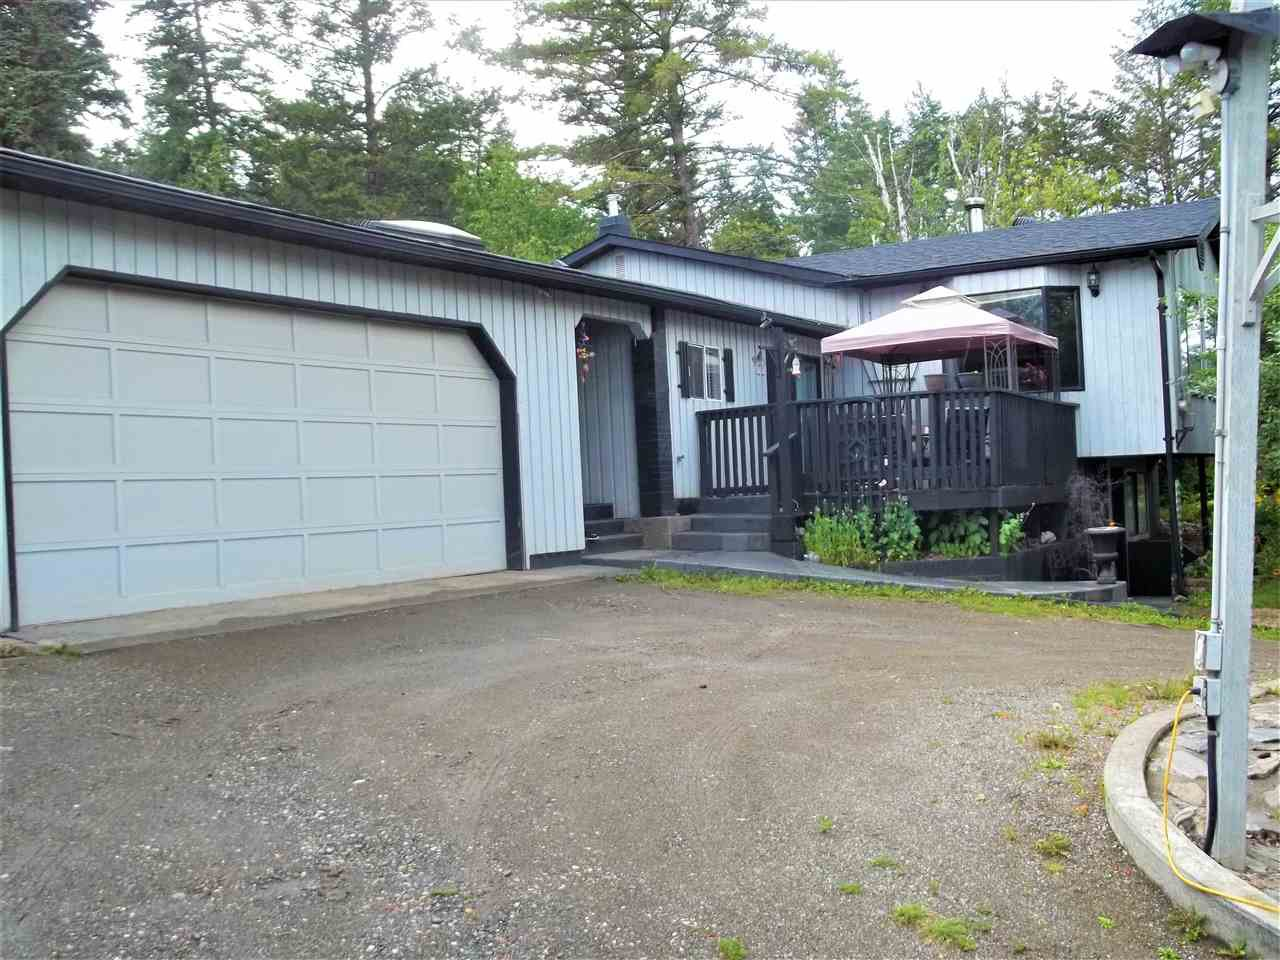 Main Photo: 525 HODGSON Road in Williams Lake: Esler/Dog Creek House for sale (Williams Lake (Zone 27))  : MLS®# R2394581